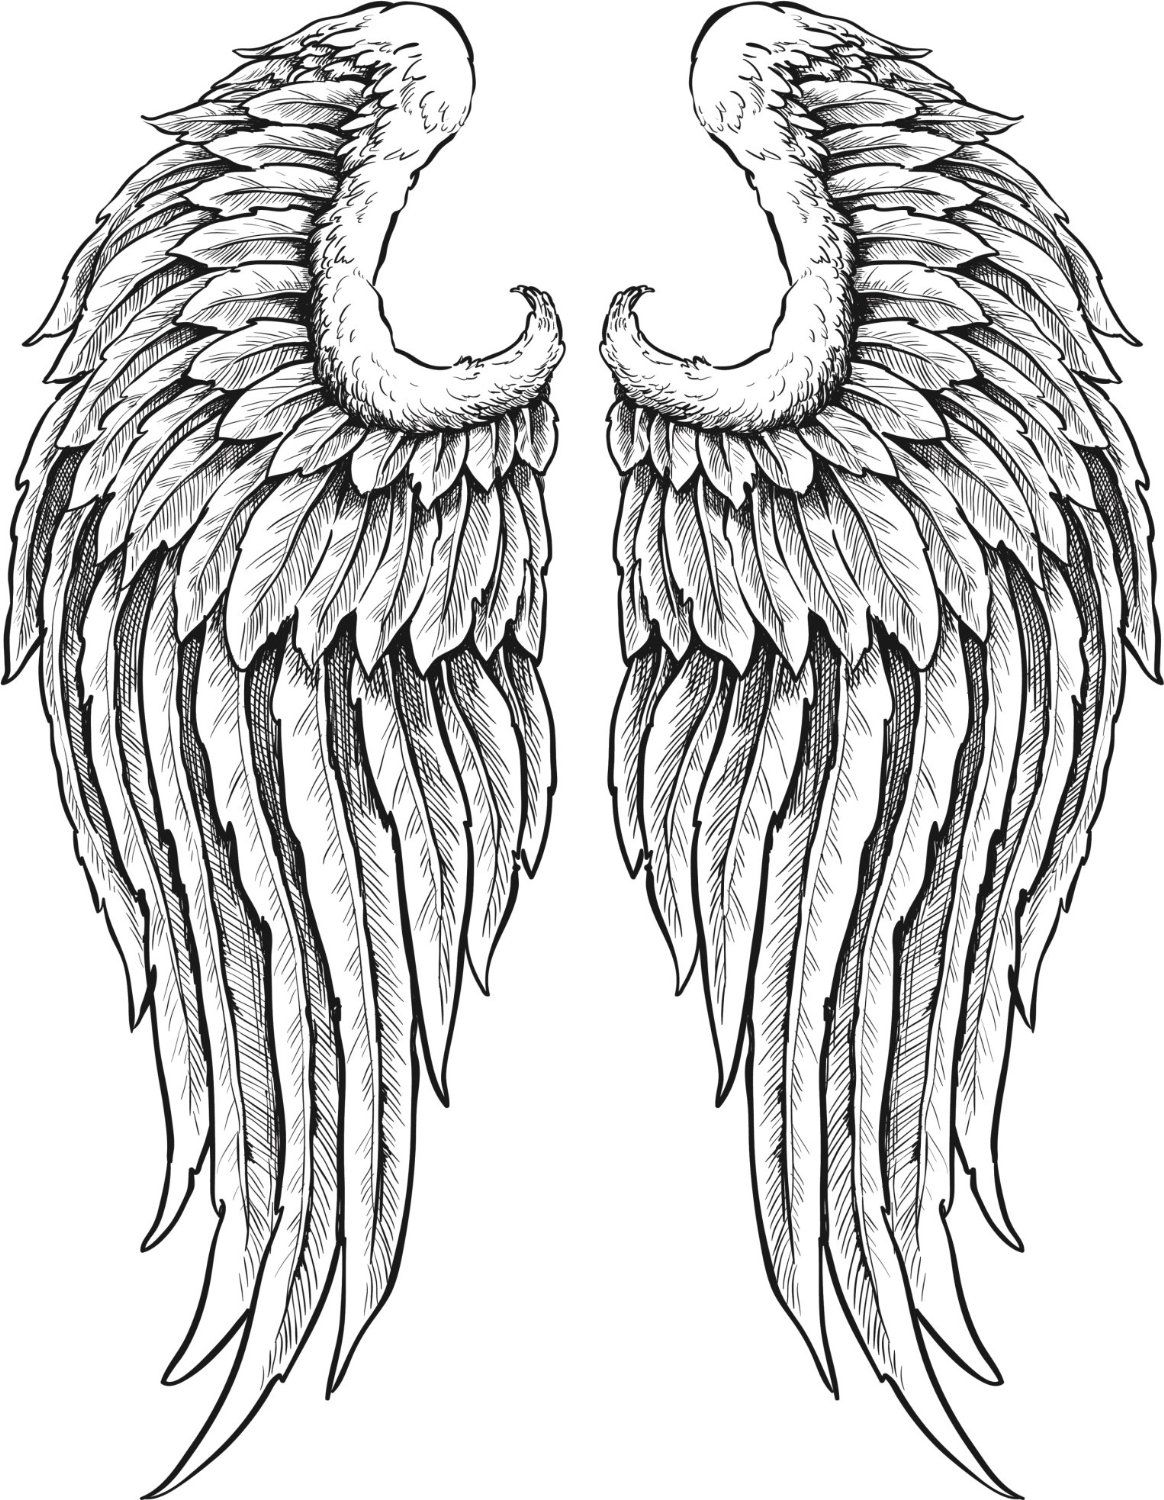 40 awesome detailed angel wings images รอยสกรปปก งาน